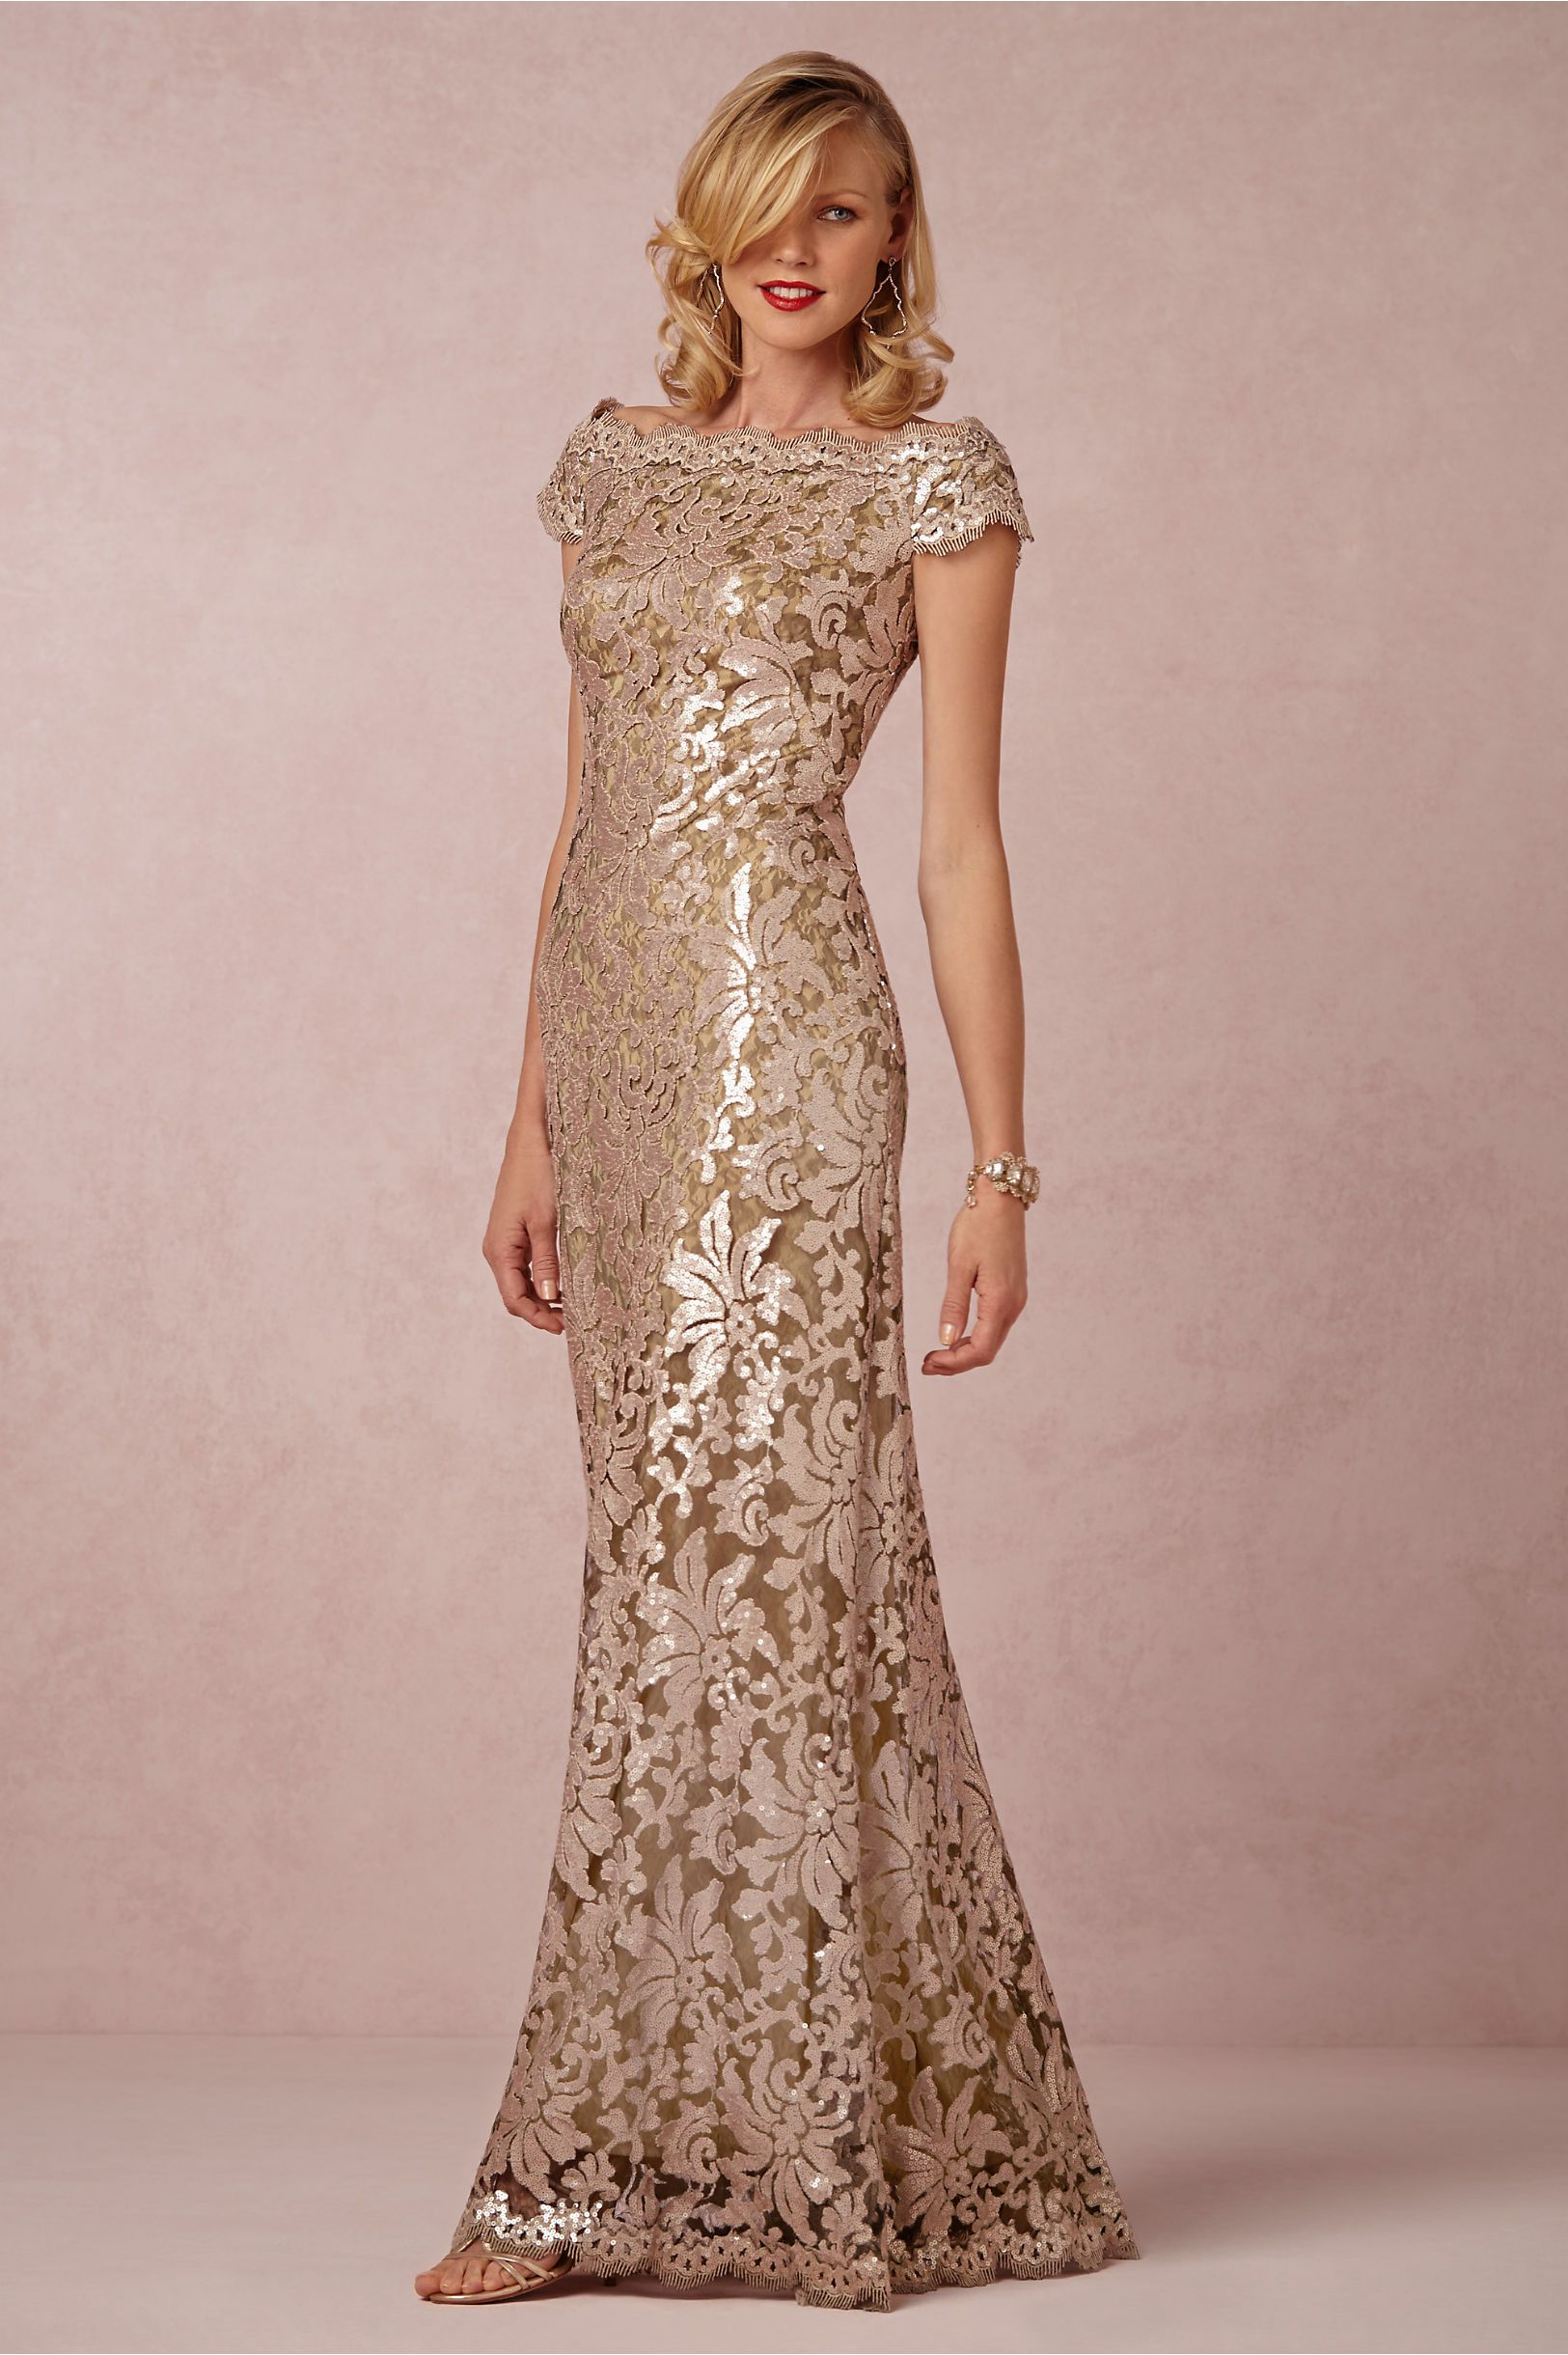 Odette Dress for the Mother of the Bride from BHLDN | Fall Wedding ...